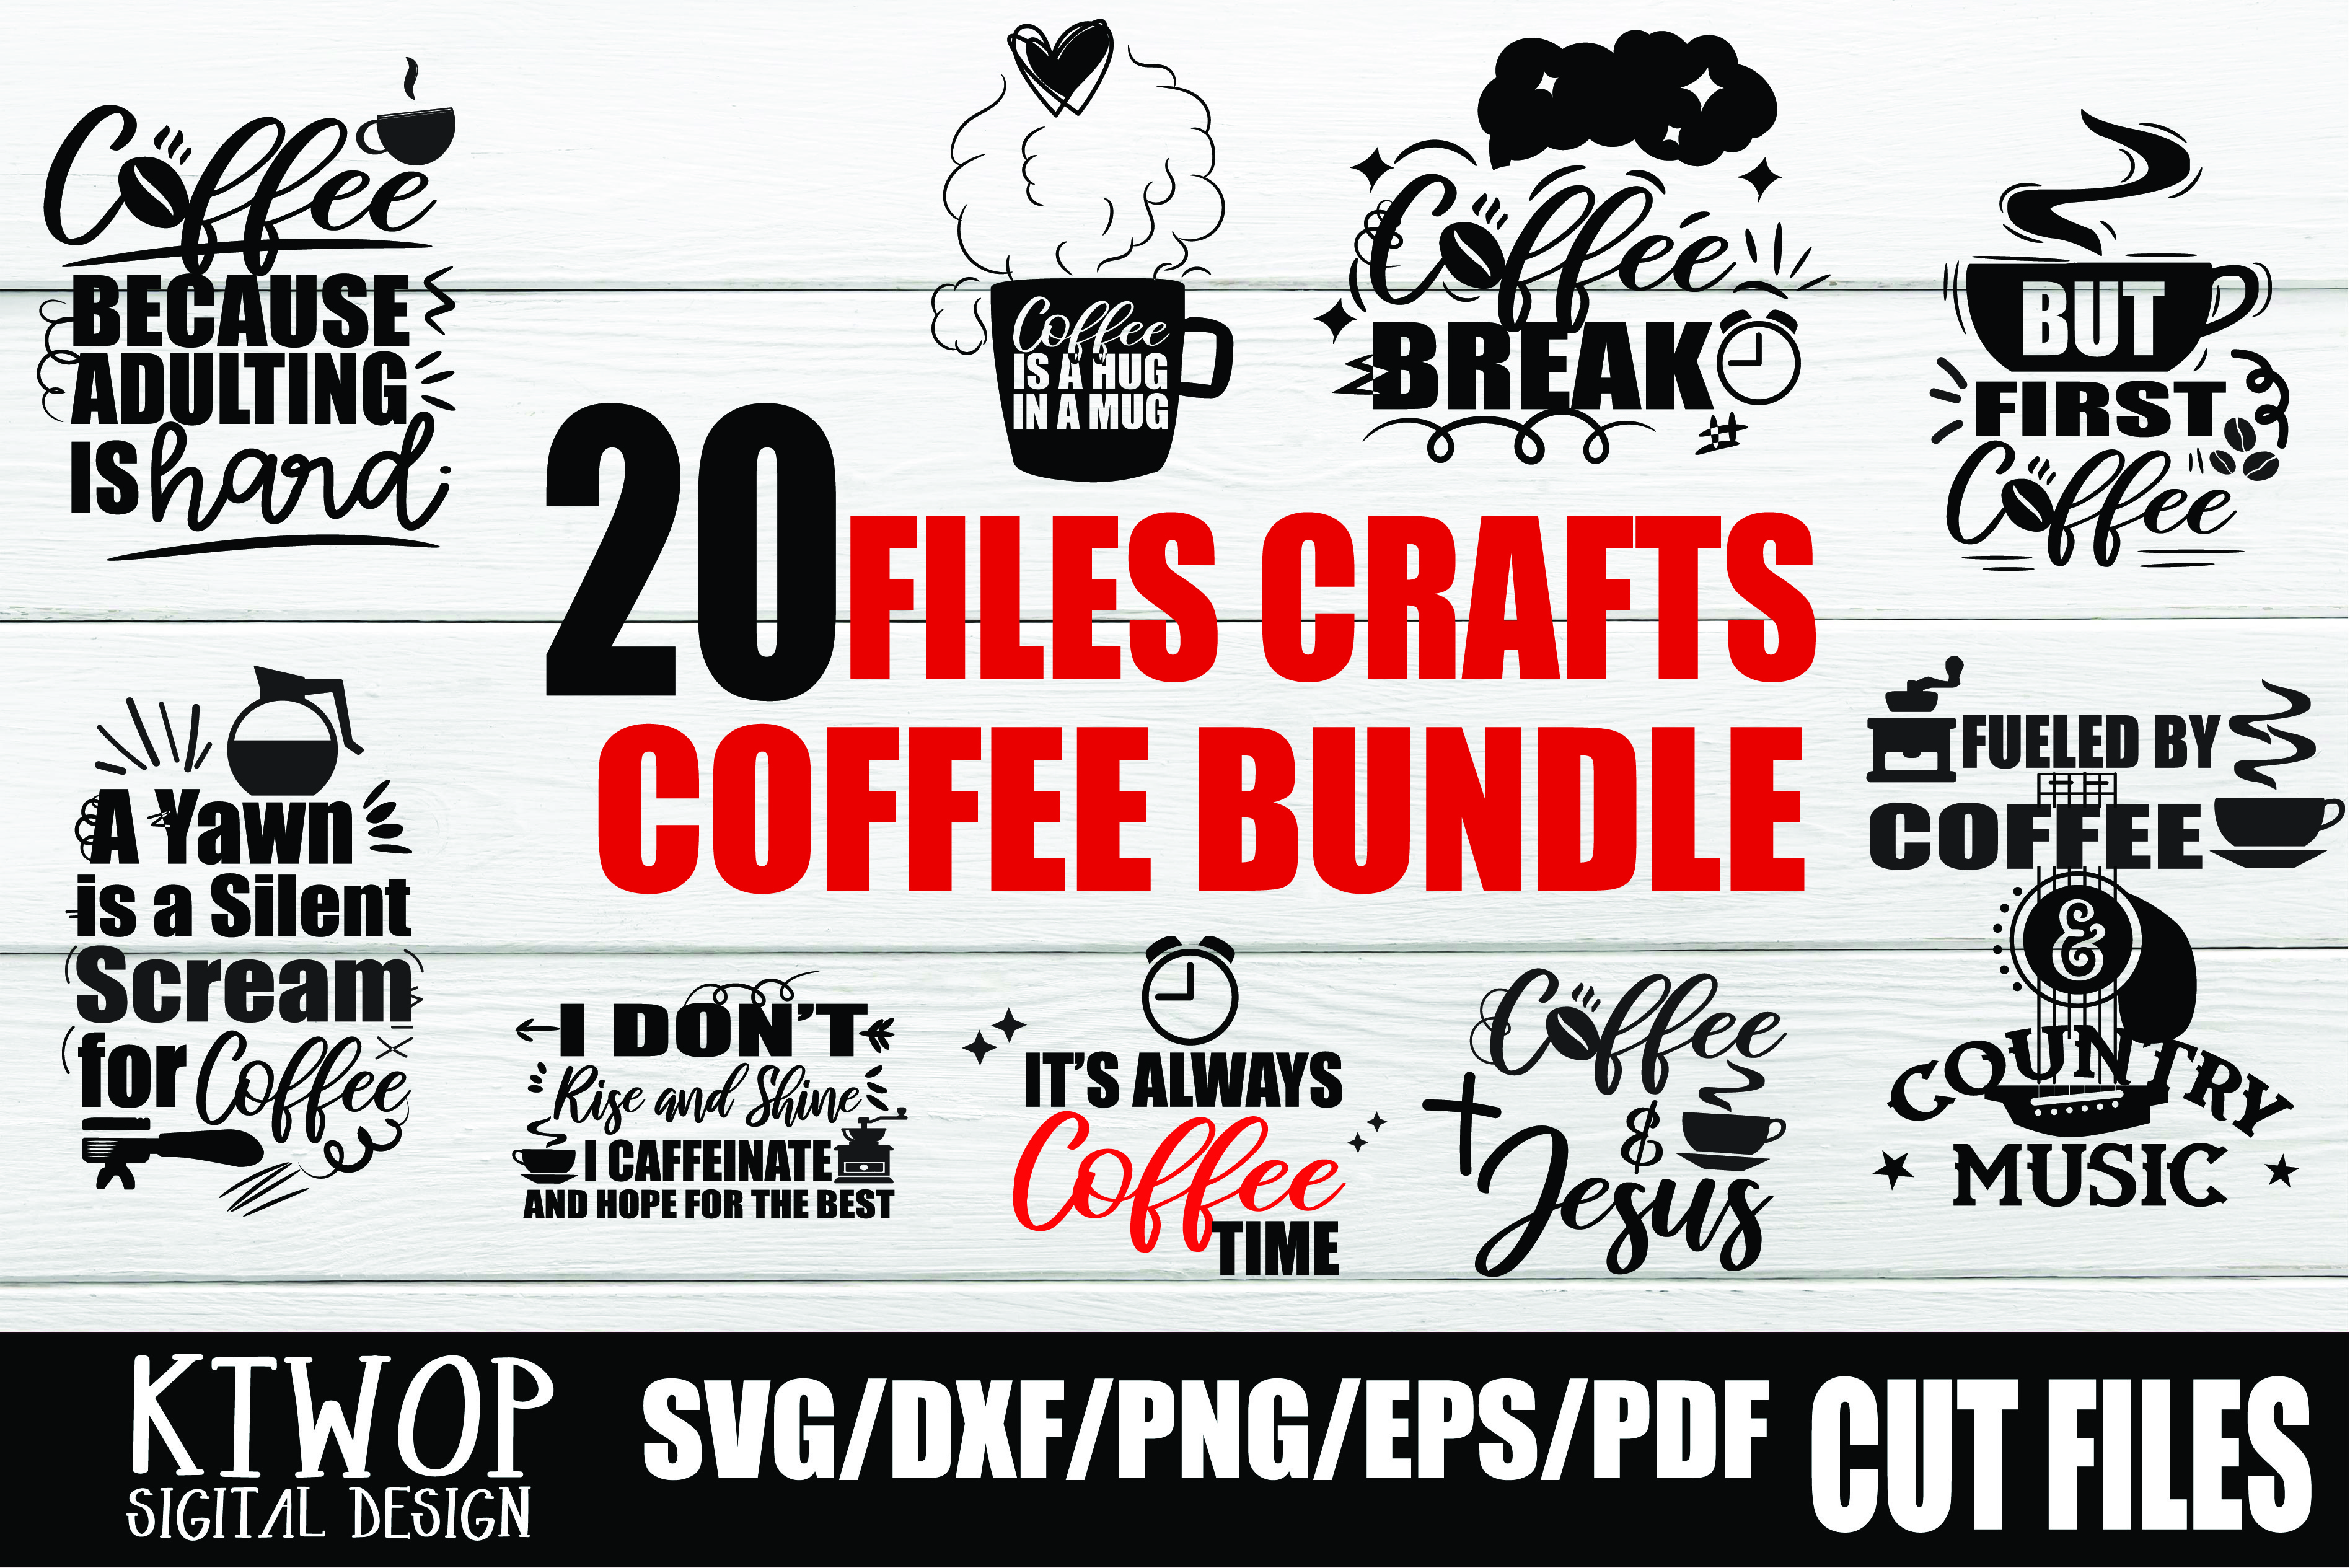 Download Free Coffee Love Coffee Bundle Graphic By Ktwop Creative Fabrica for Cricut Explore, Silhouette and other cutting machines.